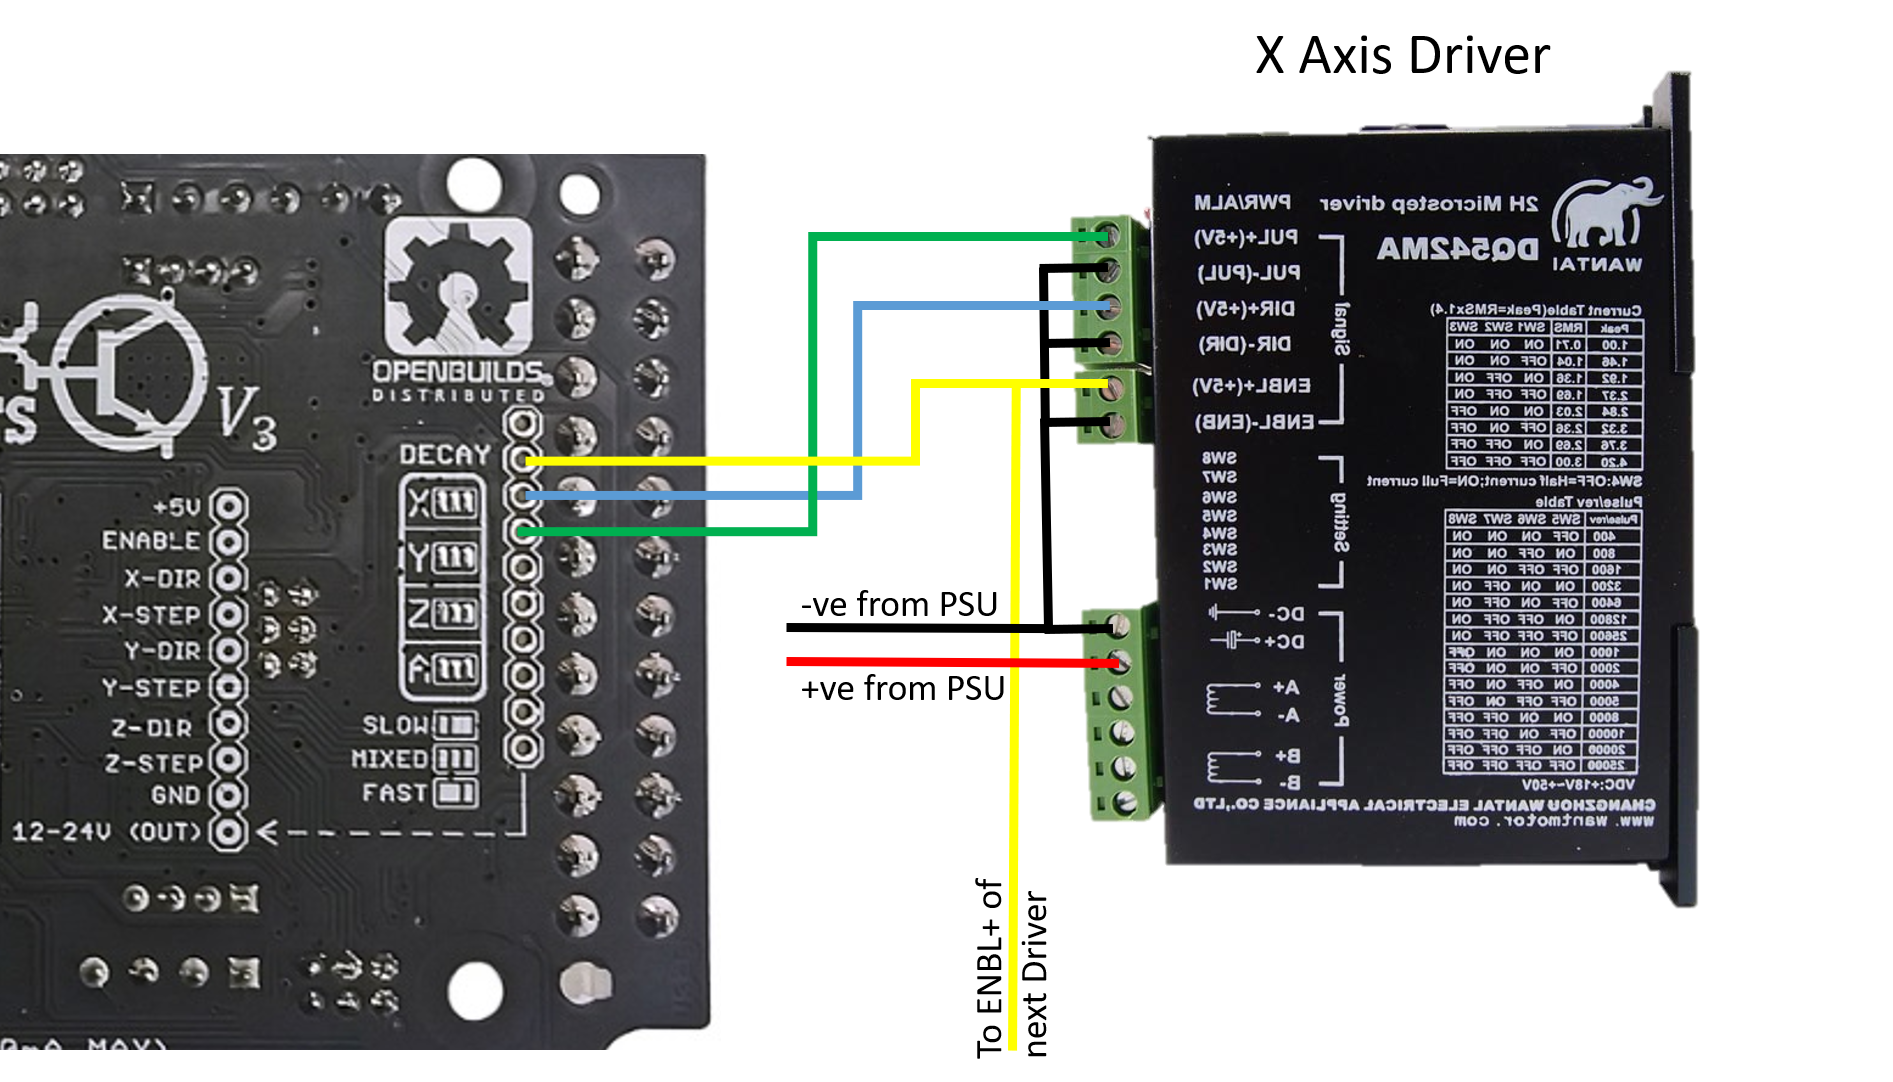 Hooking Up External Drivers To The Cnc Xpro V3 Spark Concepts Mini Controller Wiring Diagram Next Connecting X Axis And Enable Signals First Dq542ma Driver Note Mirrored Avoid Ratsnest Of